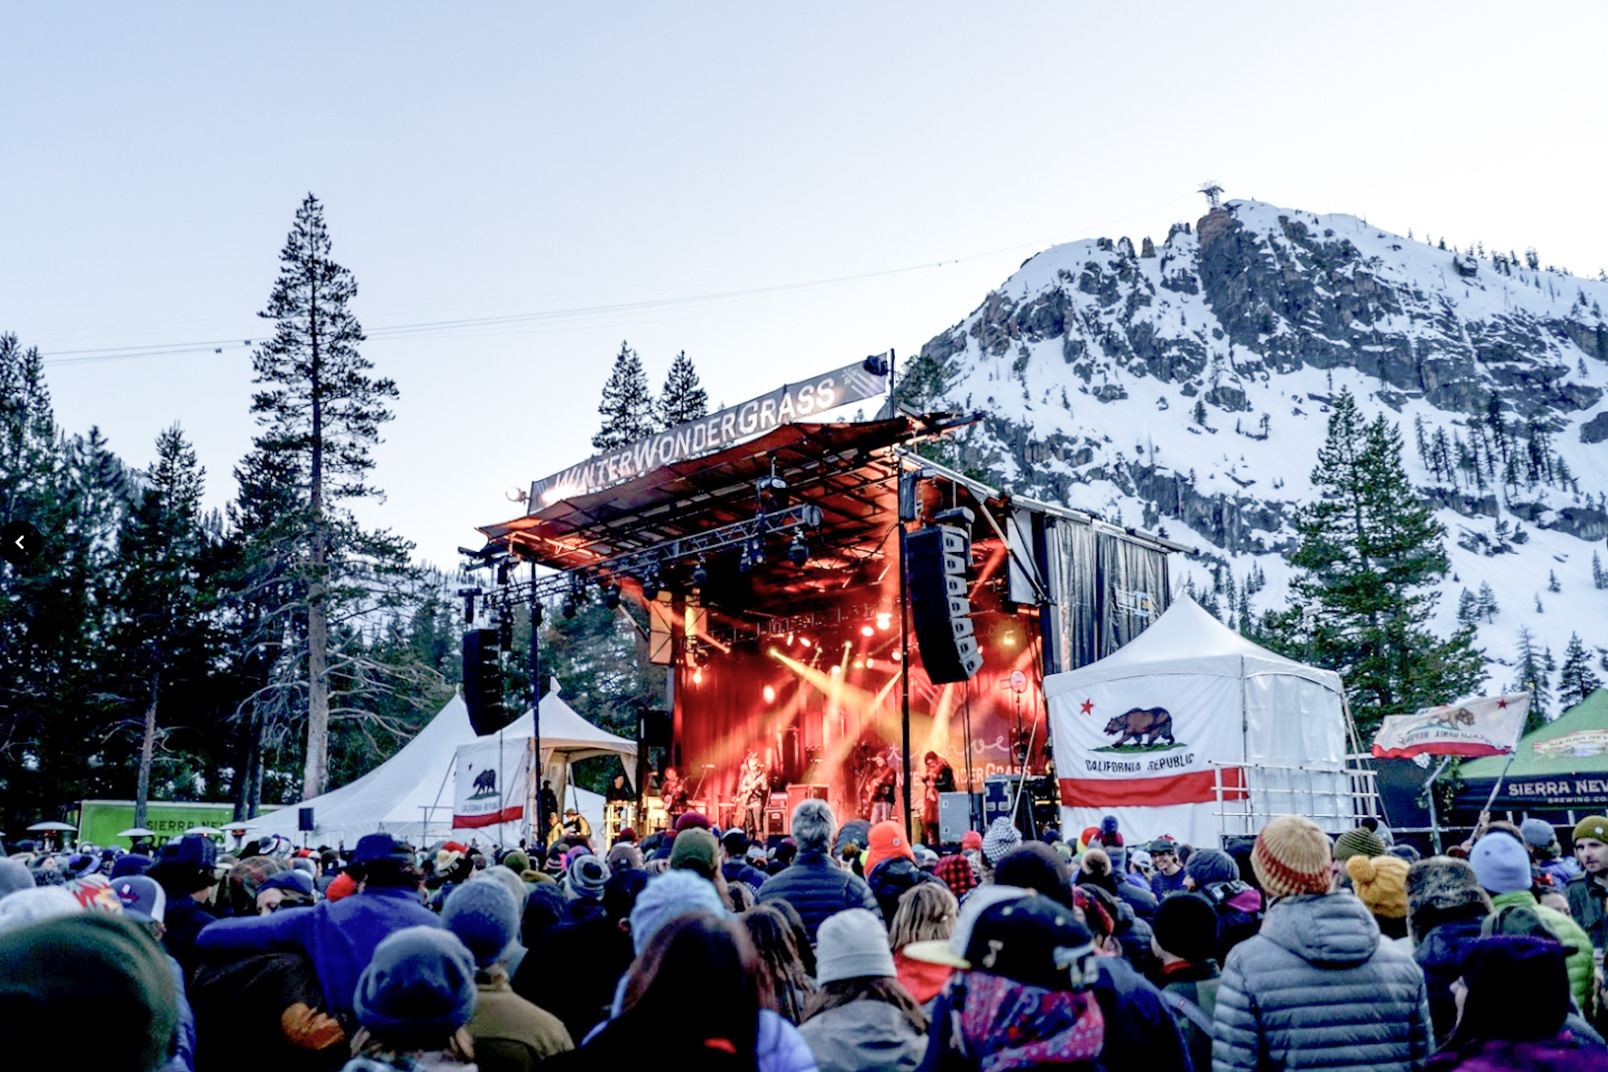 Enjoy the Squaw Valley Live Entertainment Concert